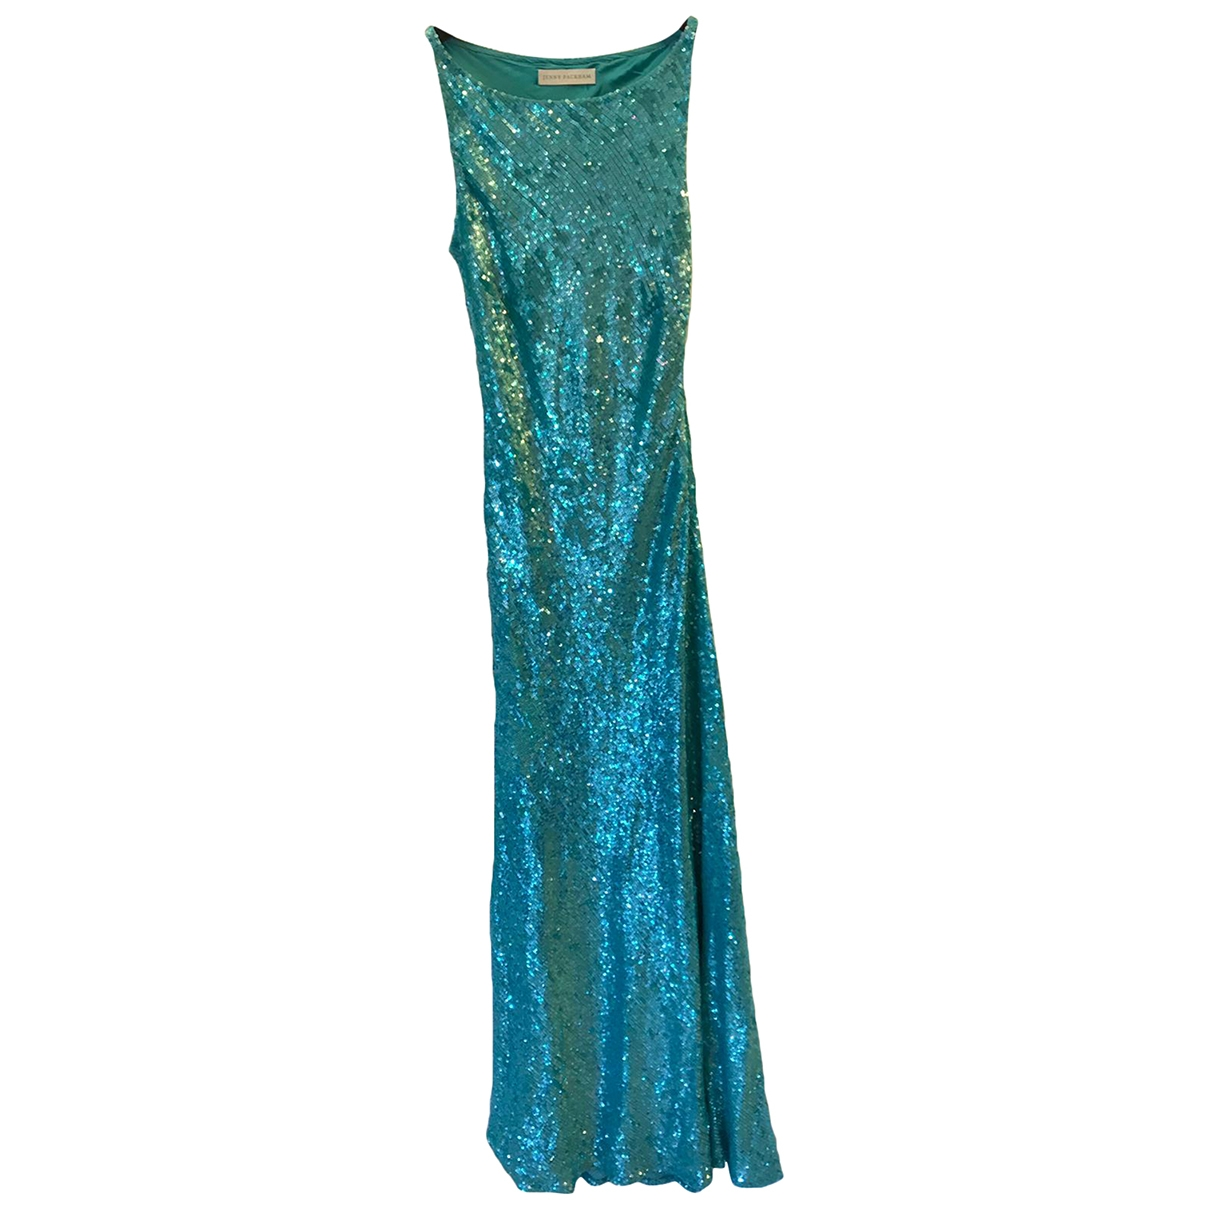 Jenny Packham \N Turquoise Glitter dress for Women 10 UK